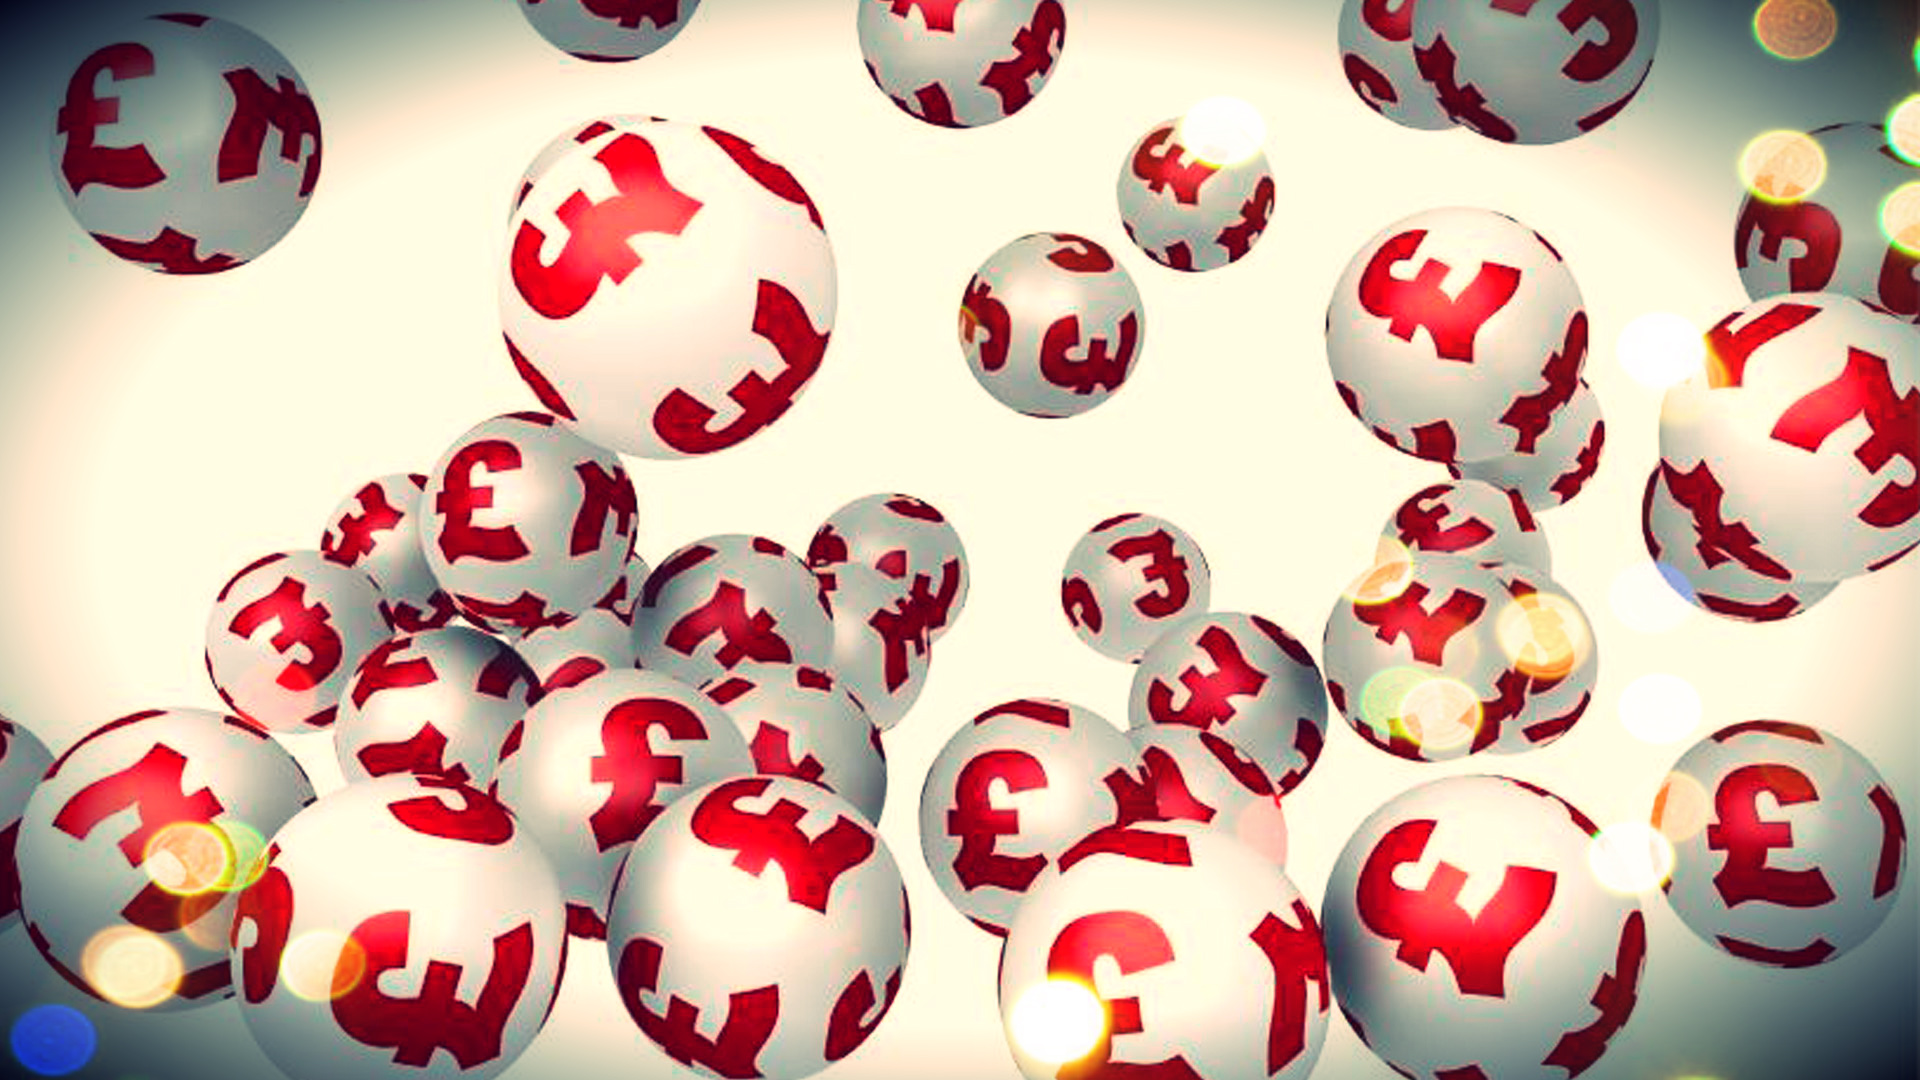 Possible financial lessons that we can all learn from lottery gambling